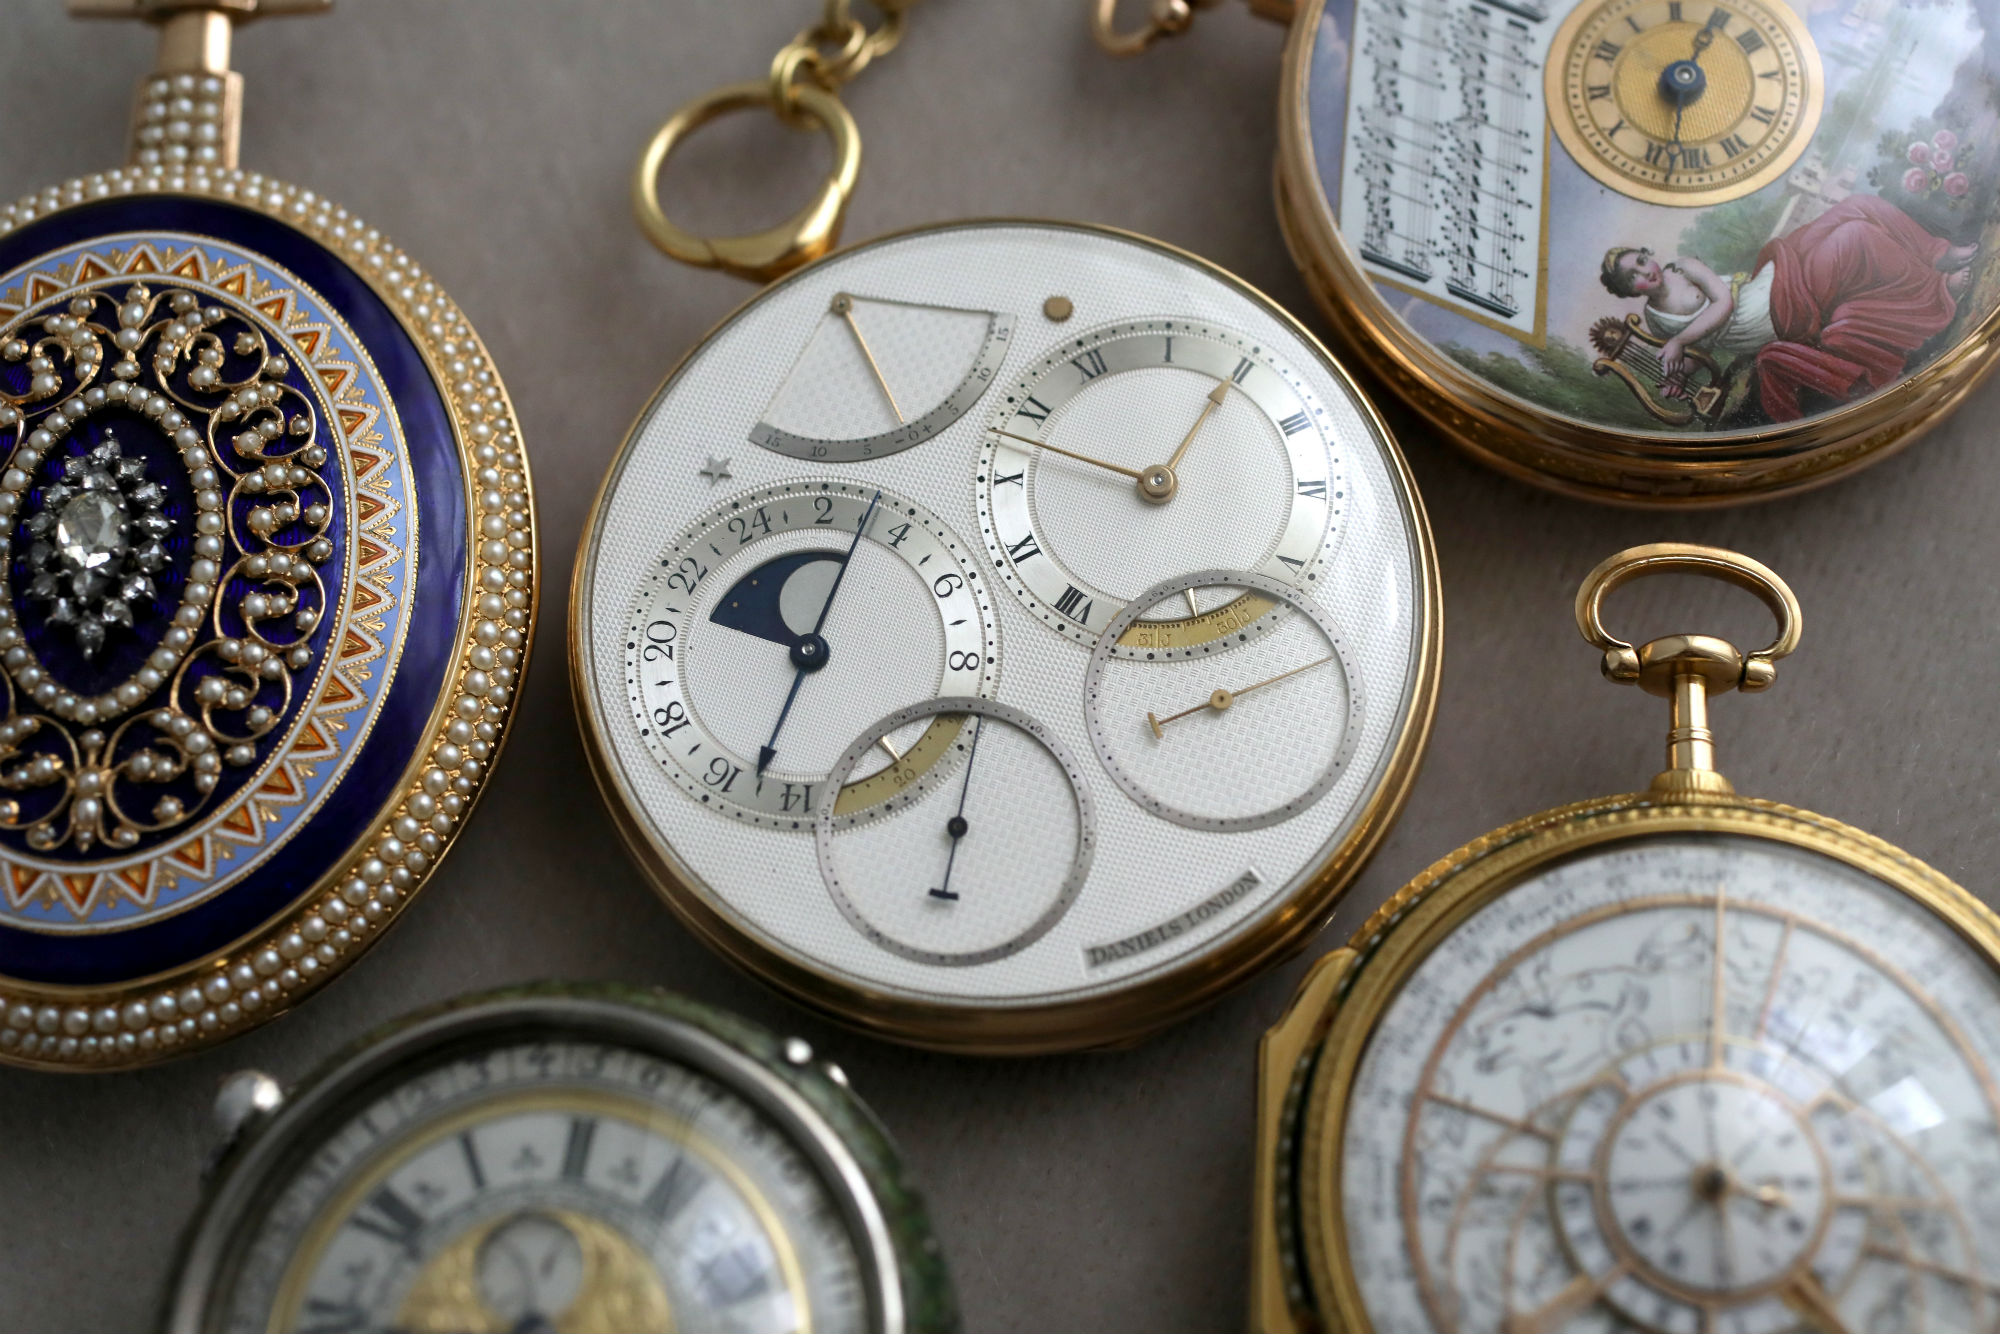 Experts reveal what you need to know before buying an antique or vintage watch